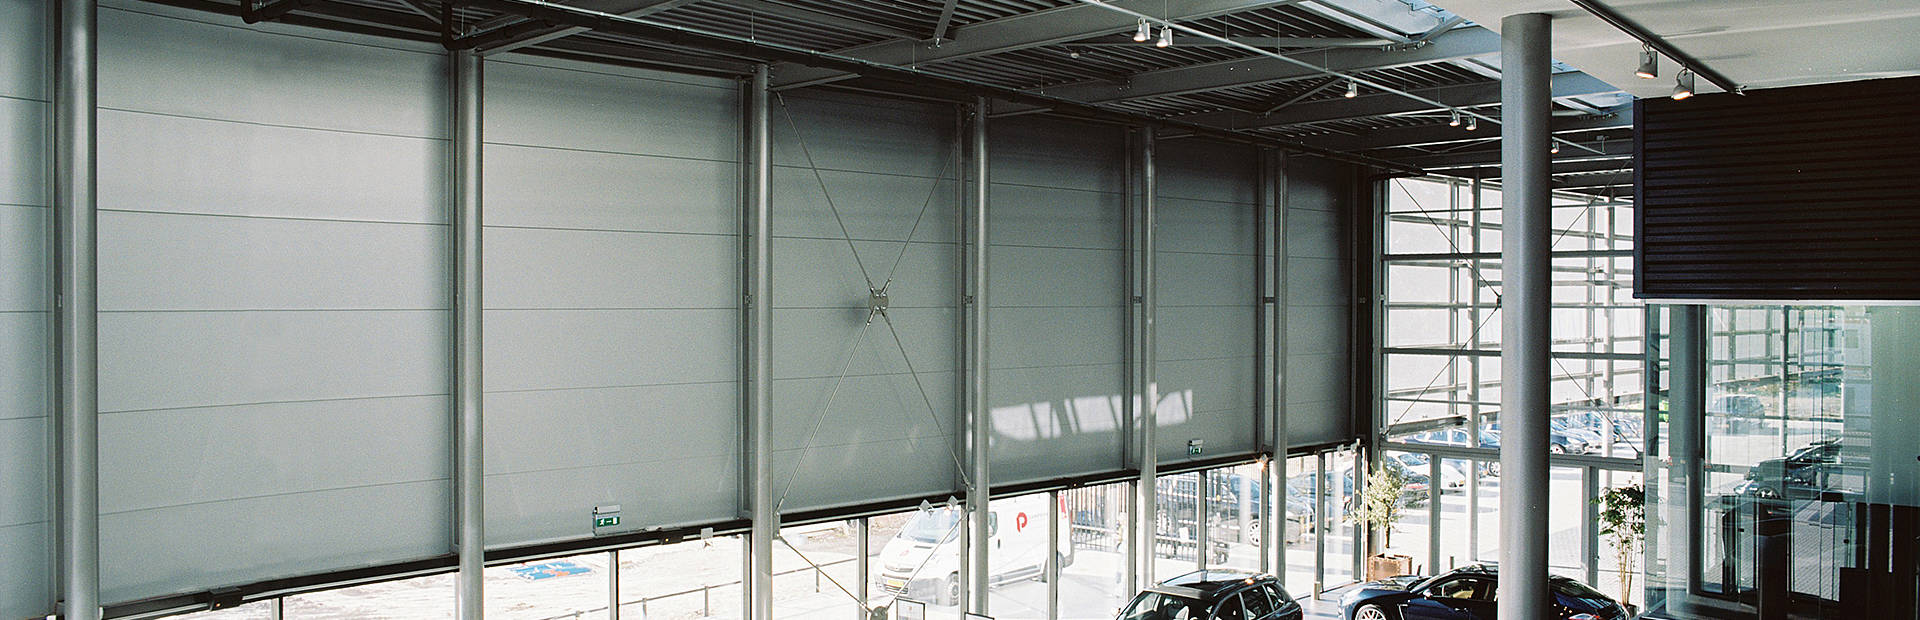 Qbiss One prefabricated architectural wall on Porsche car showroom